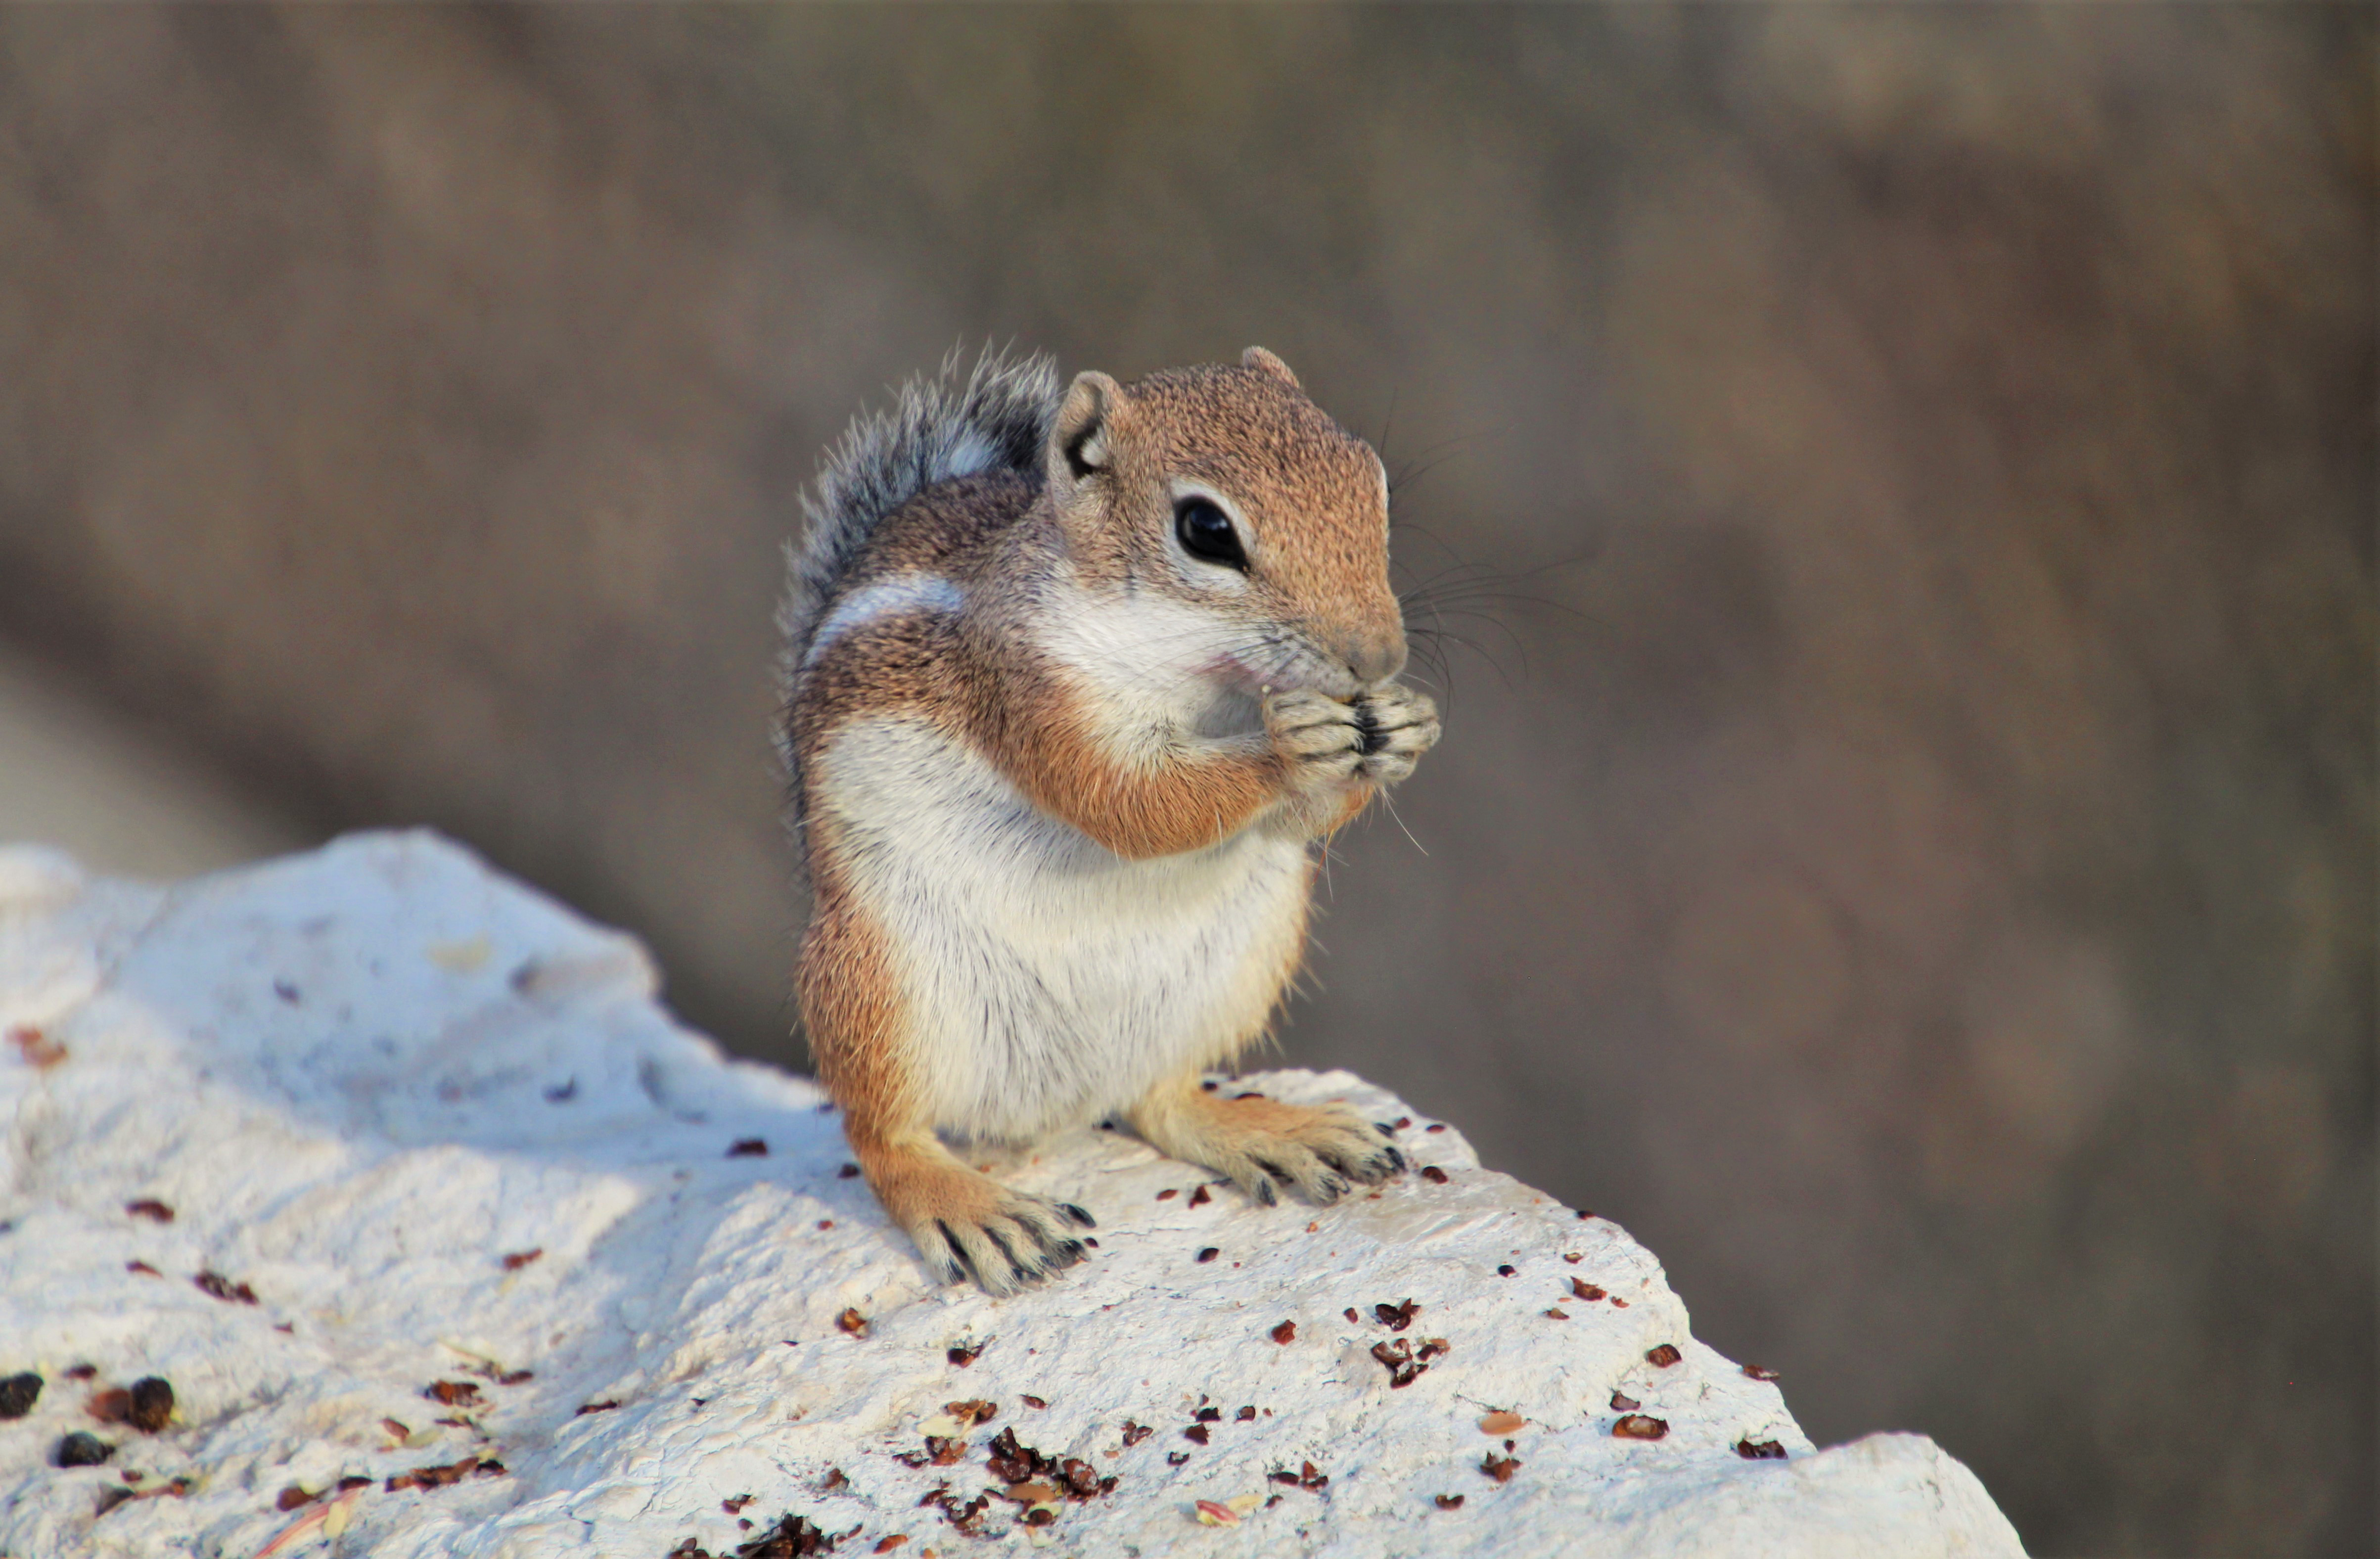 59739 download wallpaper Animals, Chipmunk, Rodent, Fluffy, Animal, Rock, Stone screensavers and pictures for free